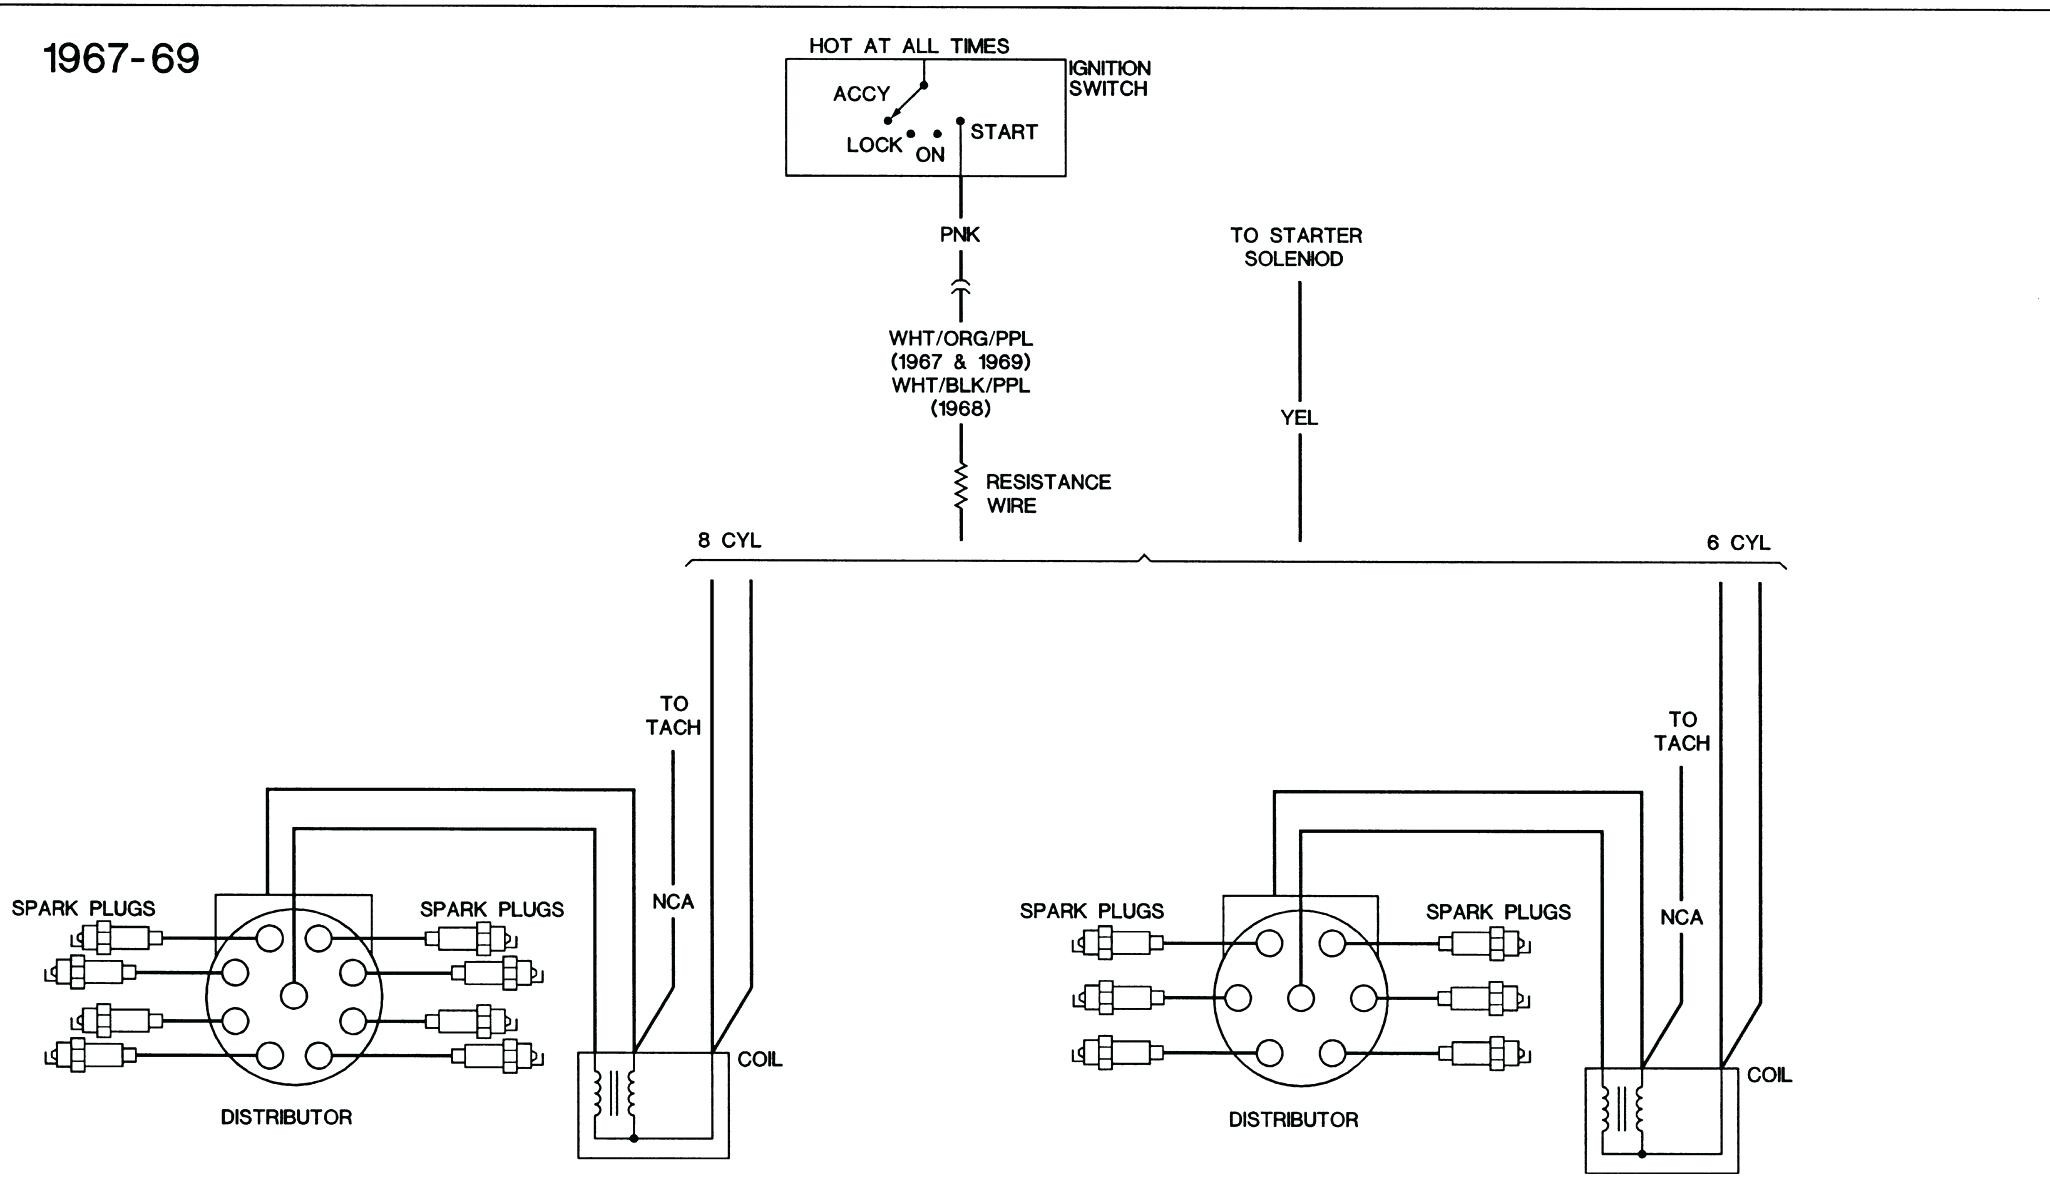 yamaha outboard tachometer wiring diagram Download-Yamaha Fuel Gauge Wiring Wiring Diagram • Yamaha Outboard Wiring Diagram 1-p